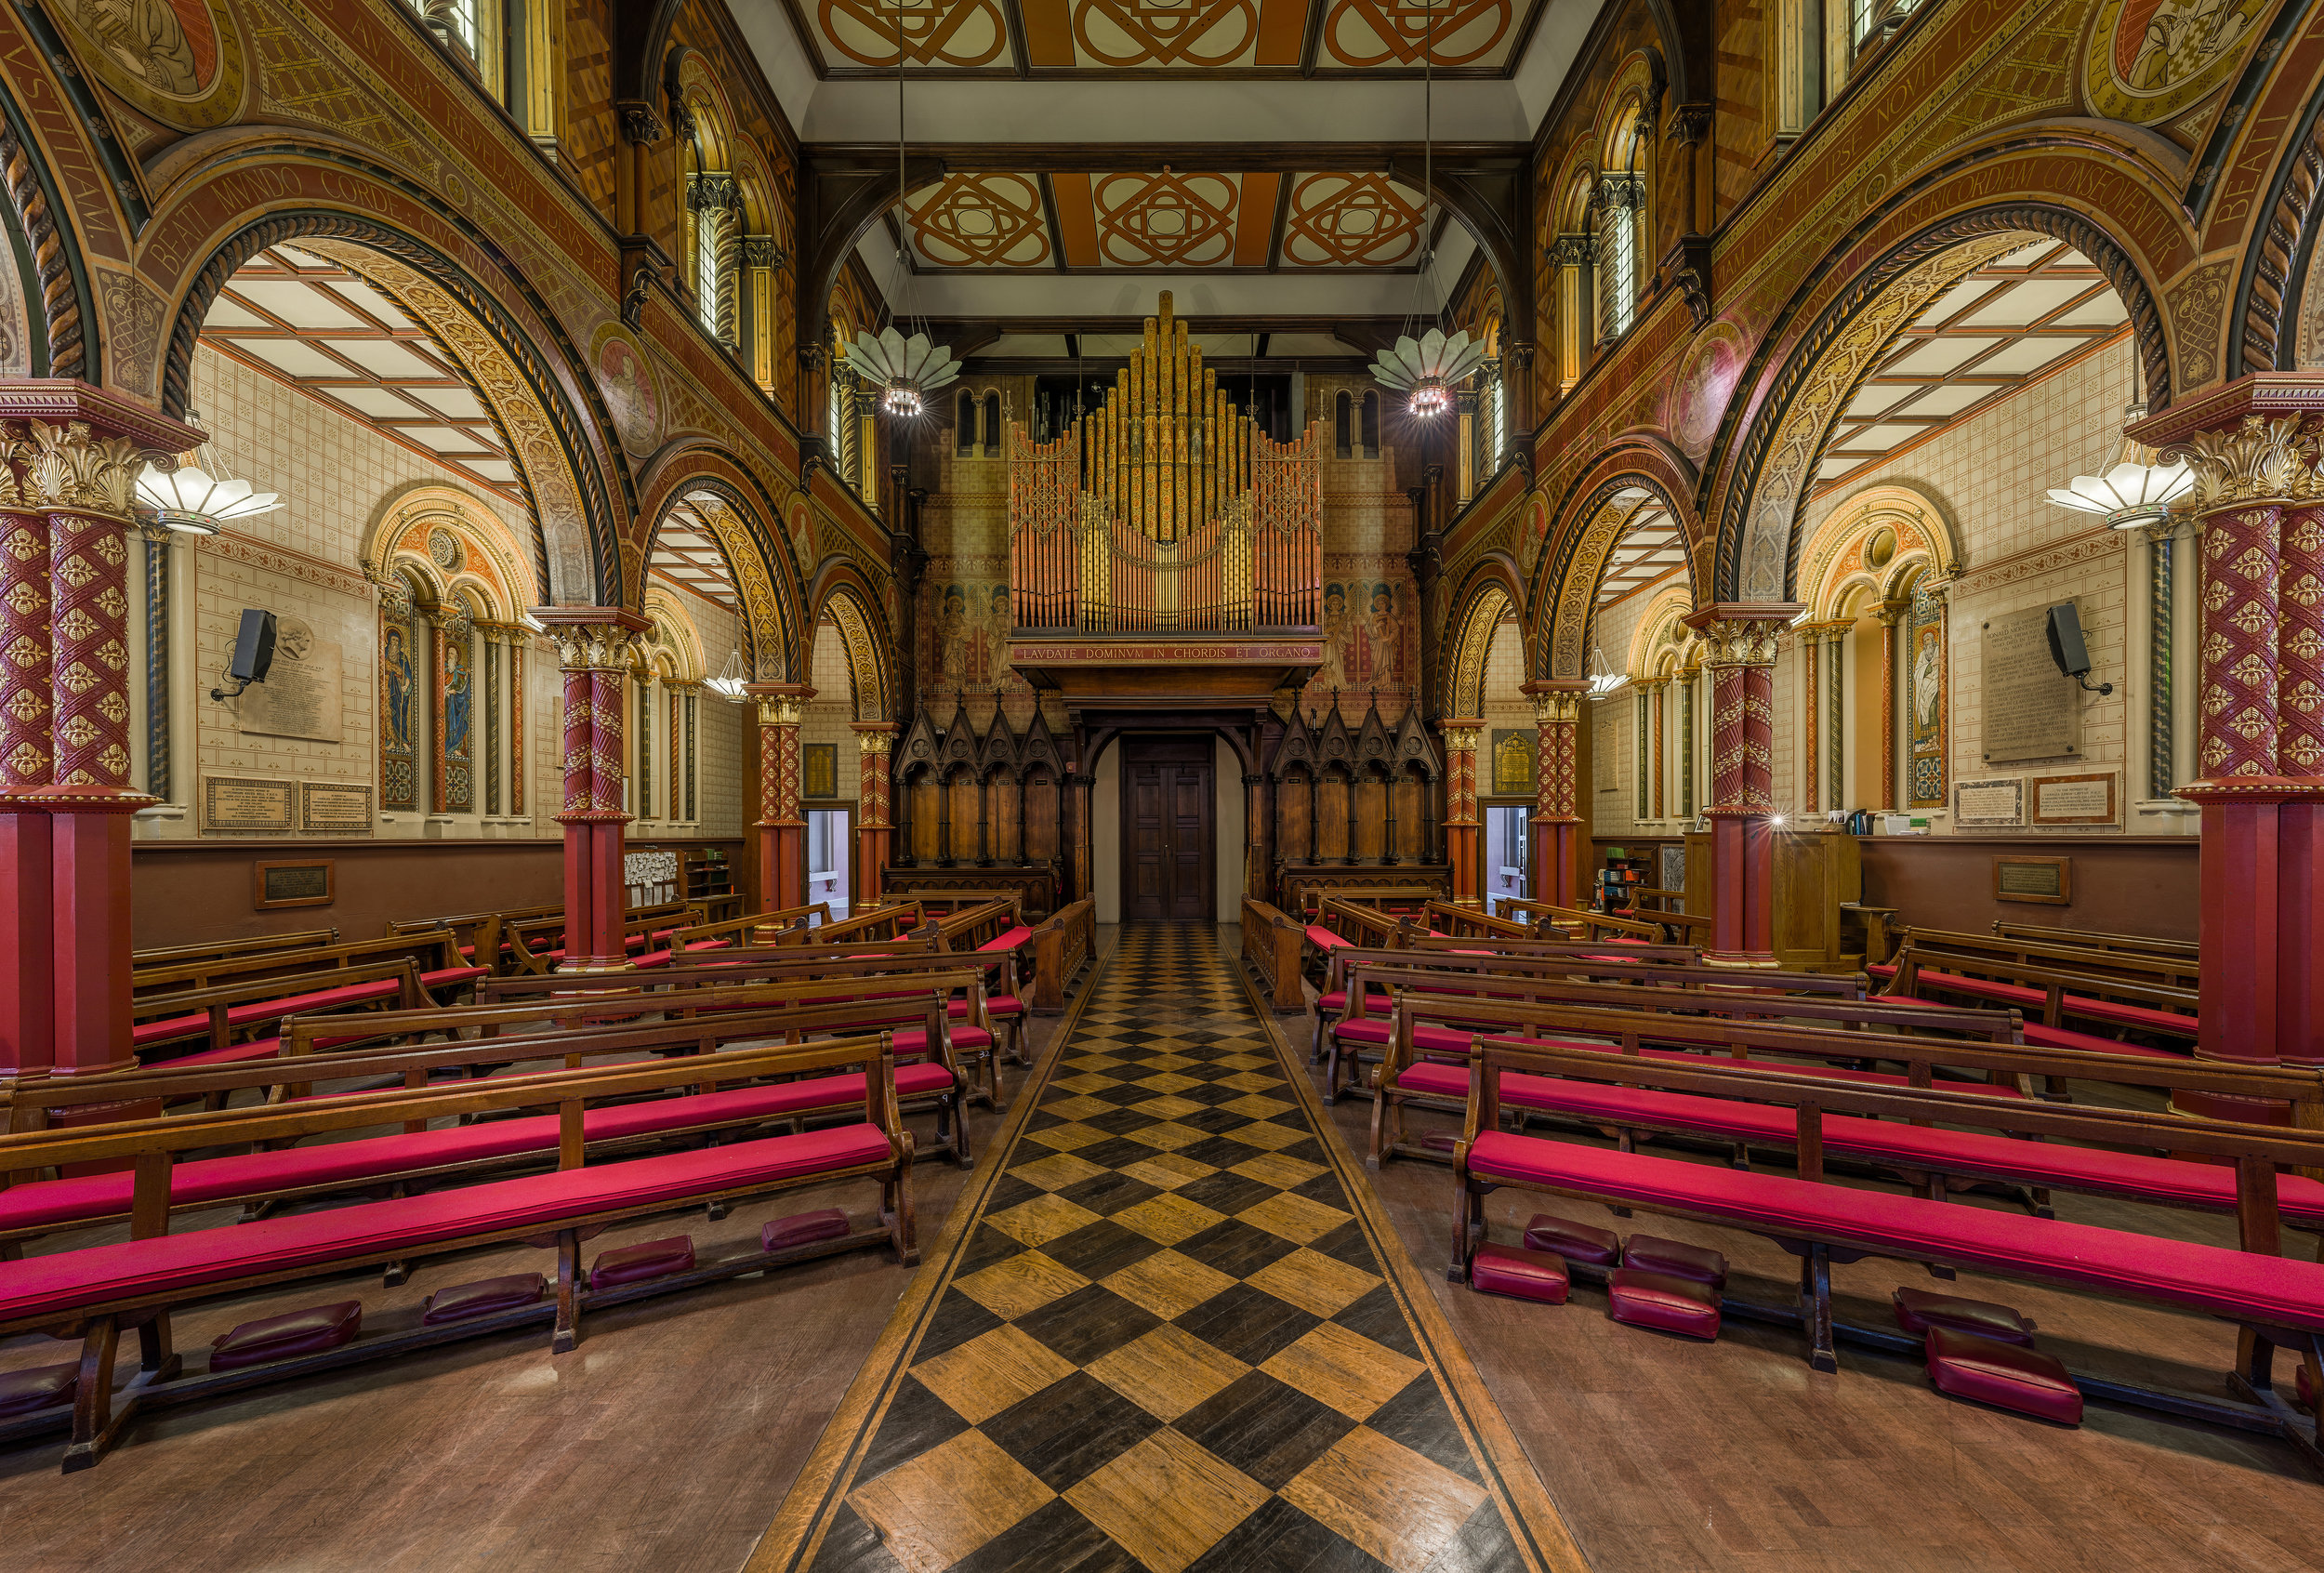 The chapel at Kings College